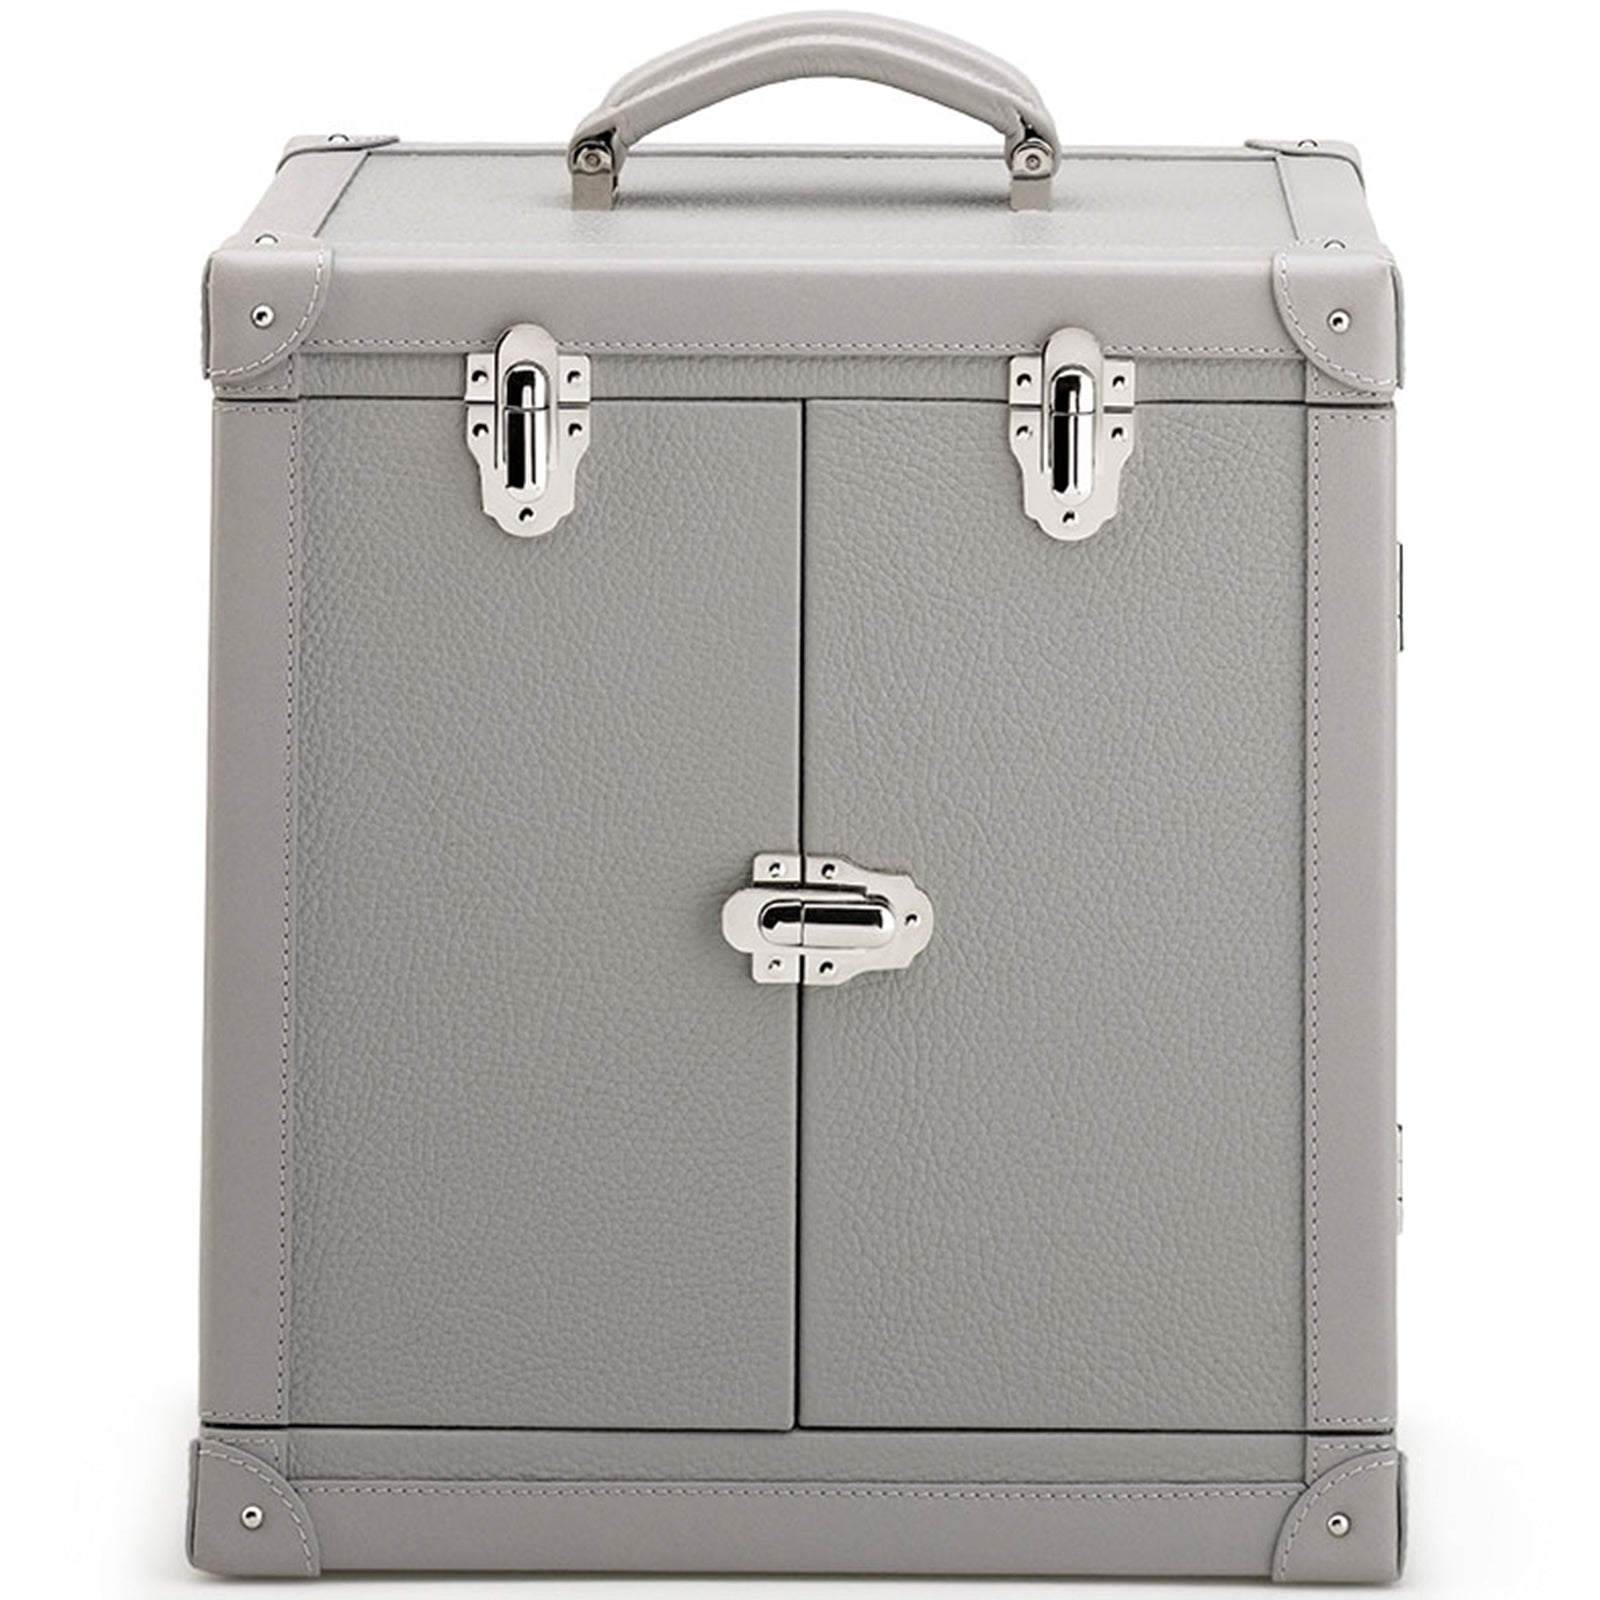 Deluxe Leather Jewellery Trunk